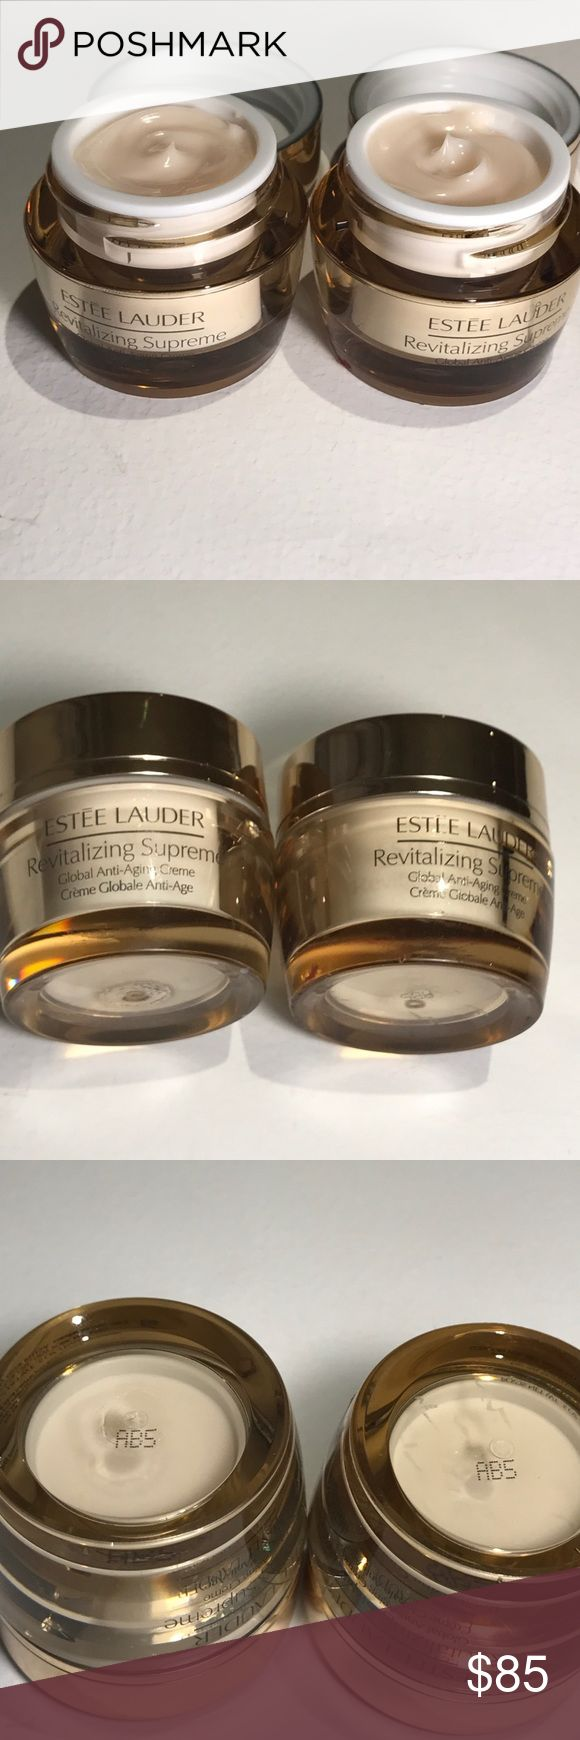 Estée Lauder revitalizing supreme global anti agin Estée Lauder revitalizing supreme global anti aging creme.5 fl oz each set of 2 Estee Lauder Makeup Face Primer